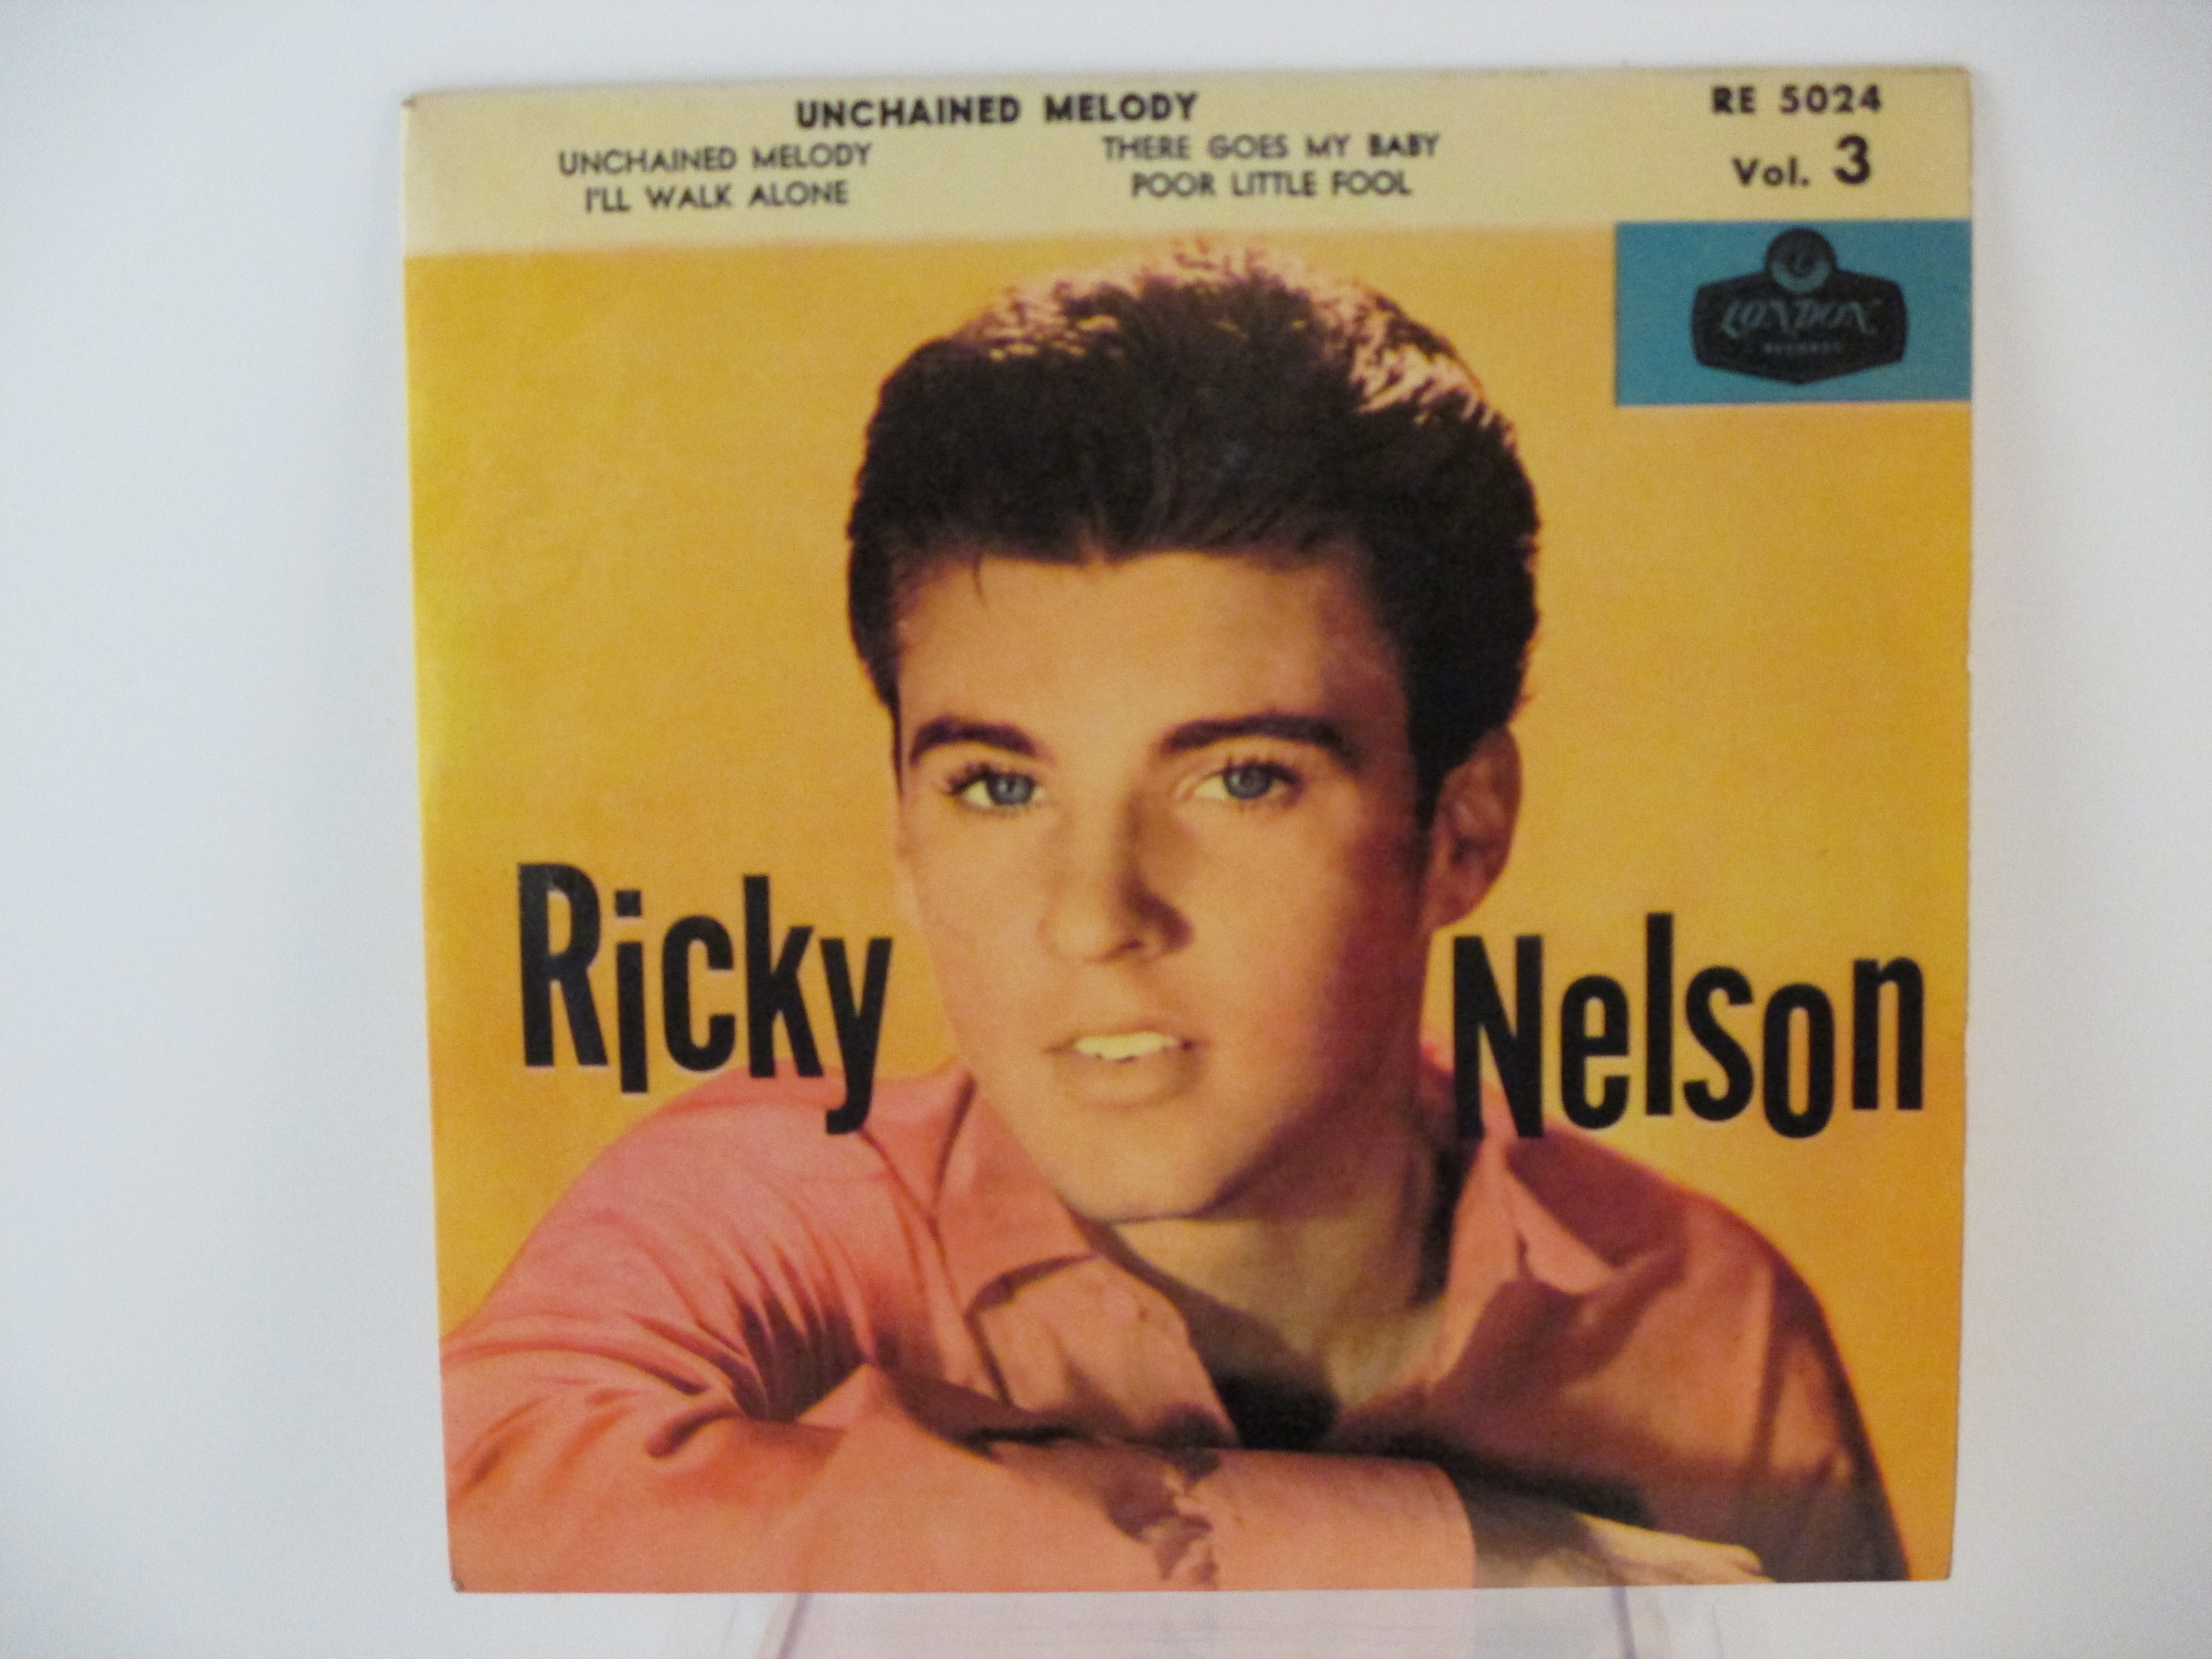 RICKY NELSON : (EP) Unchained melody / I'll walk alone / There goes my baby / Poor little fool